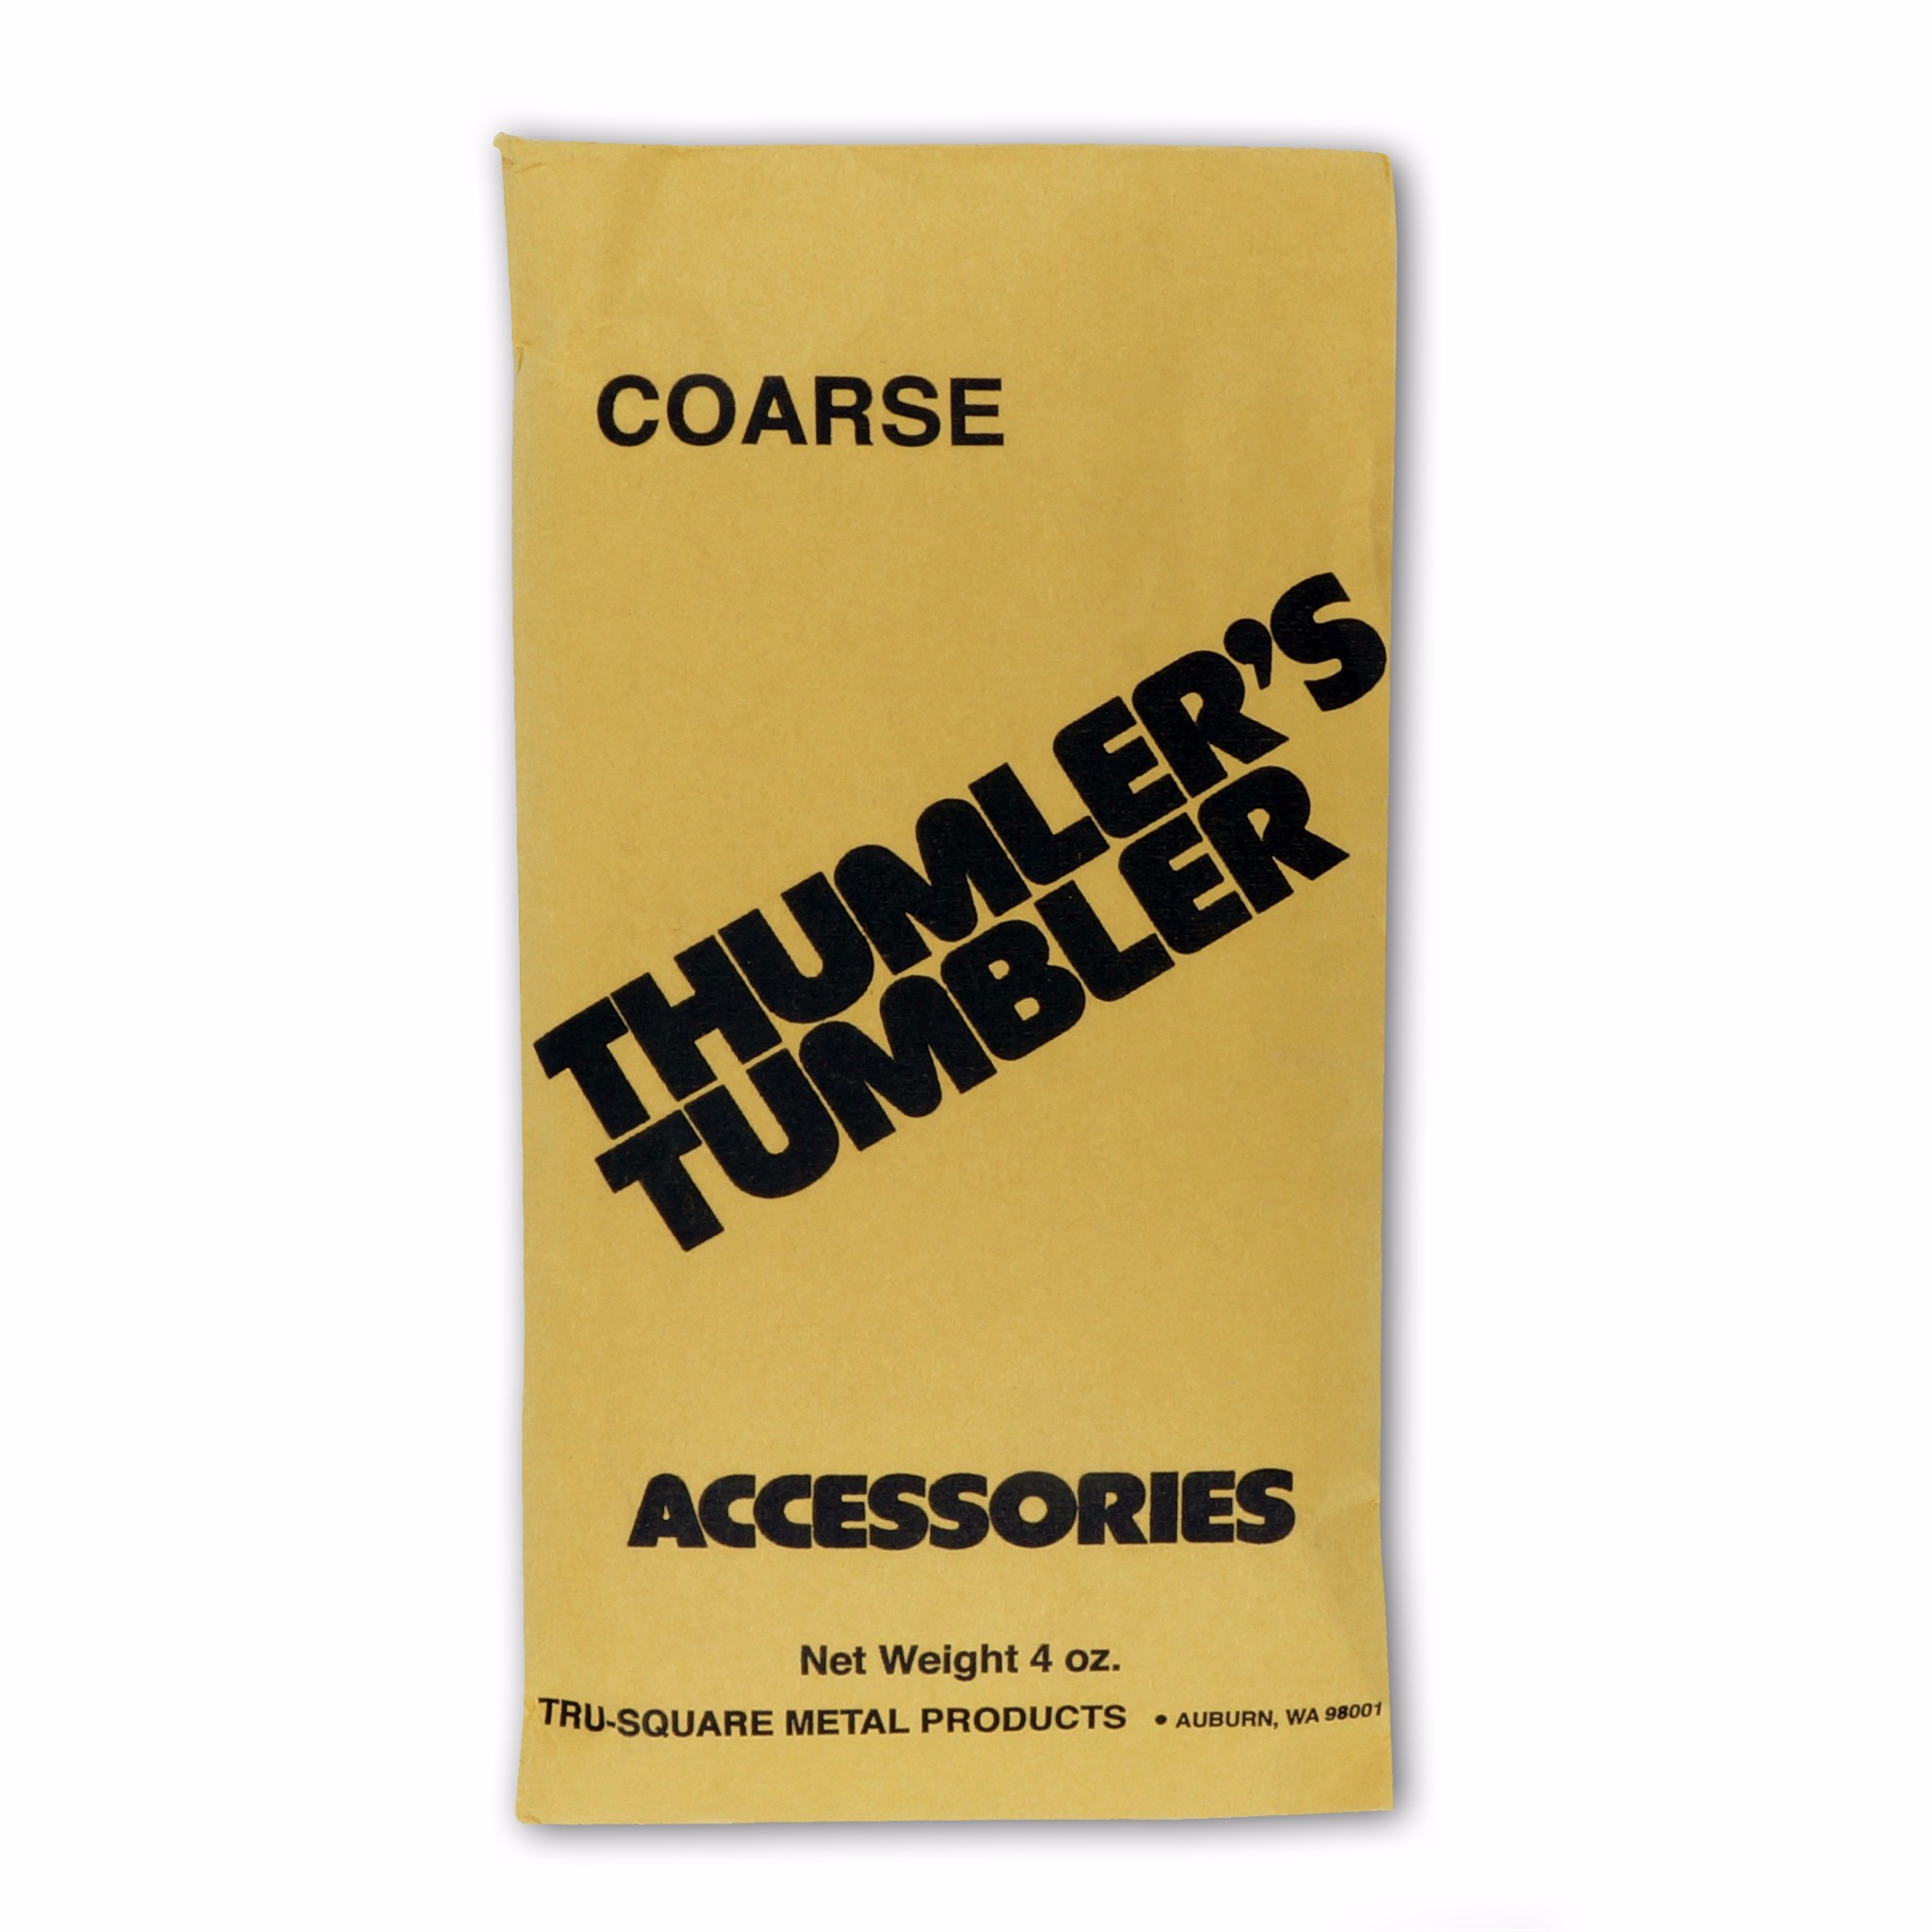 Thumlers Tumbler 4 oz of Rock Tumbling Coarse Grit for First Stage Polishing